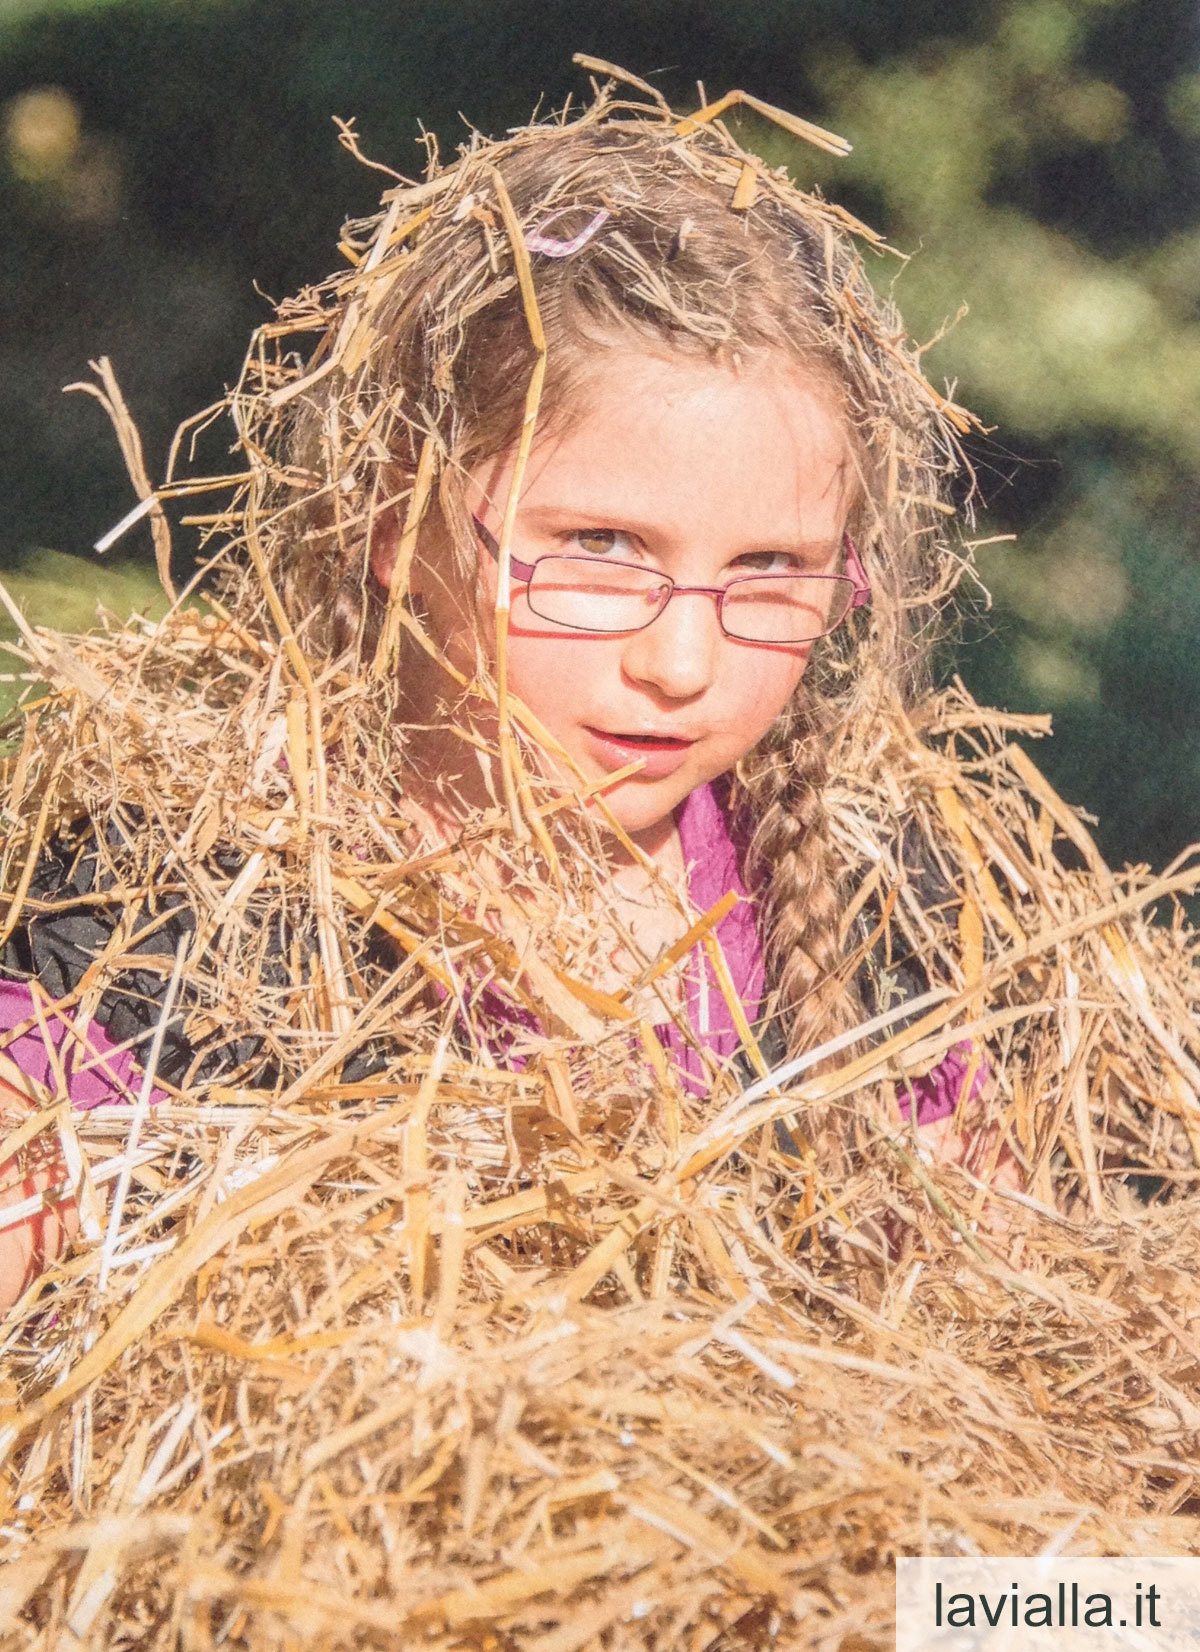 My daughter, Leandra, playing in a huge straw pile at LaVialla